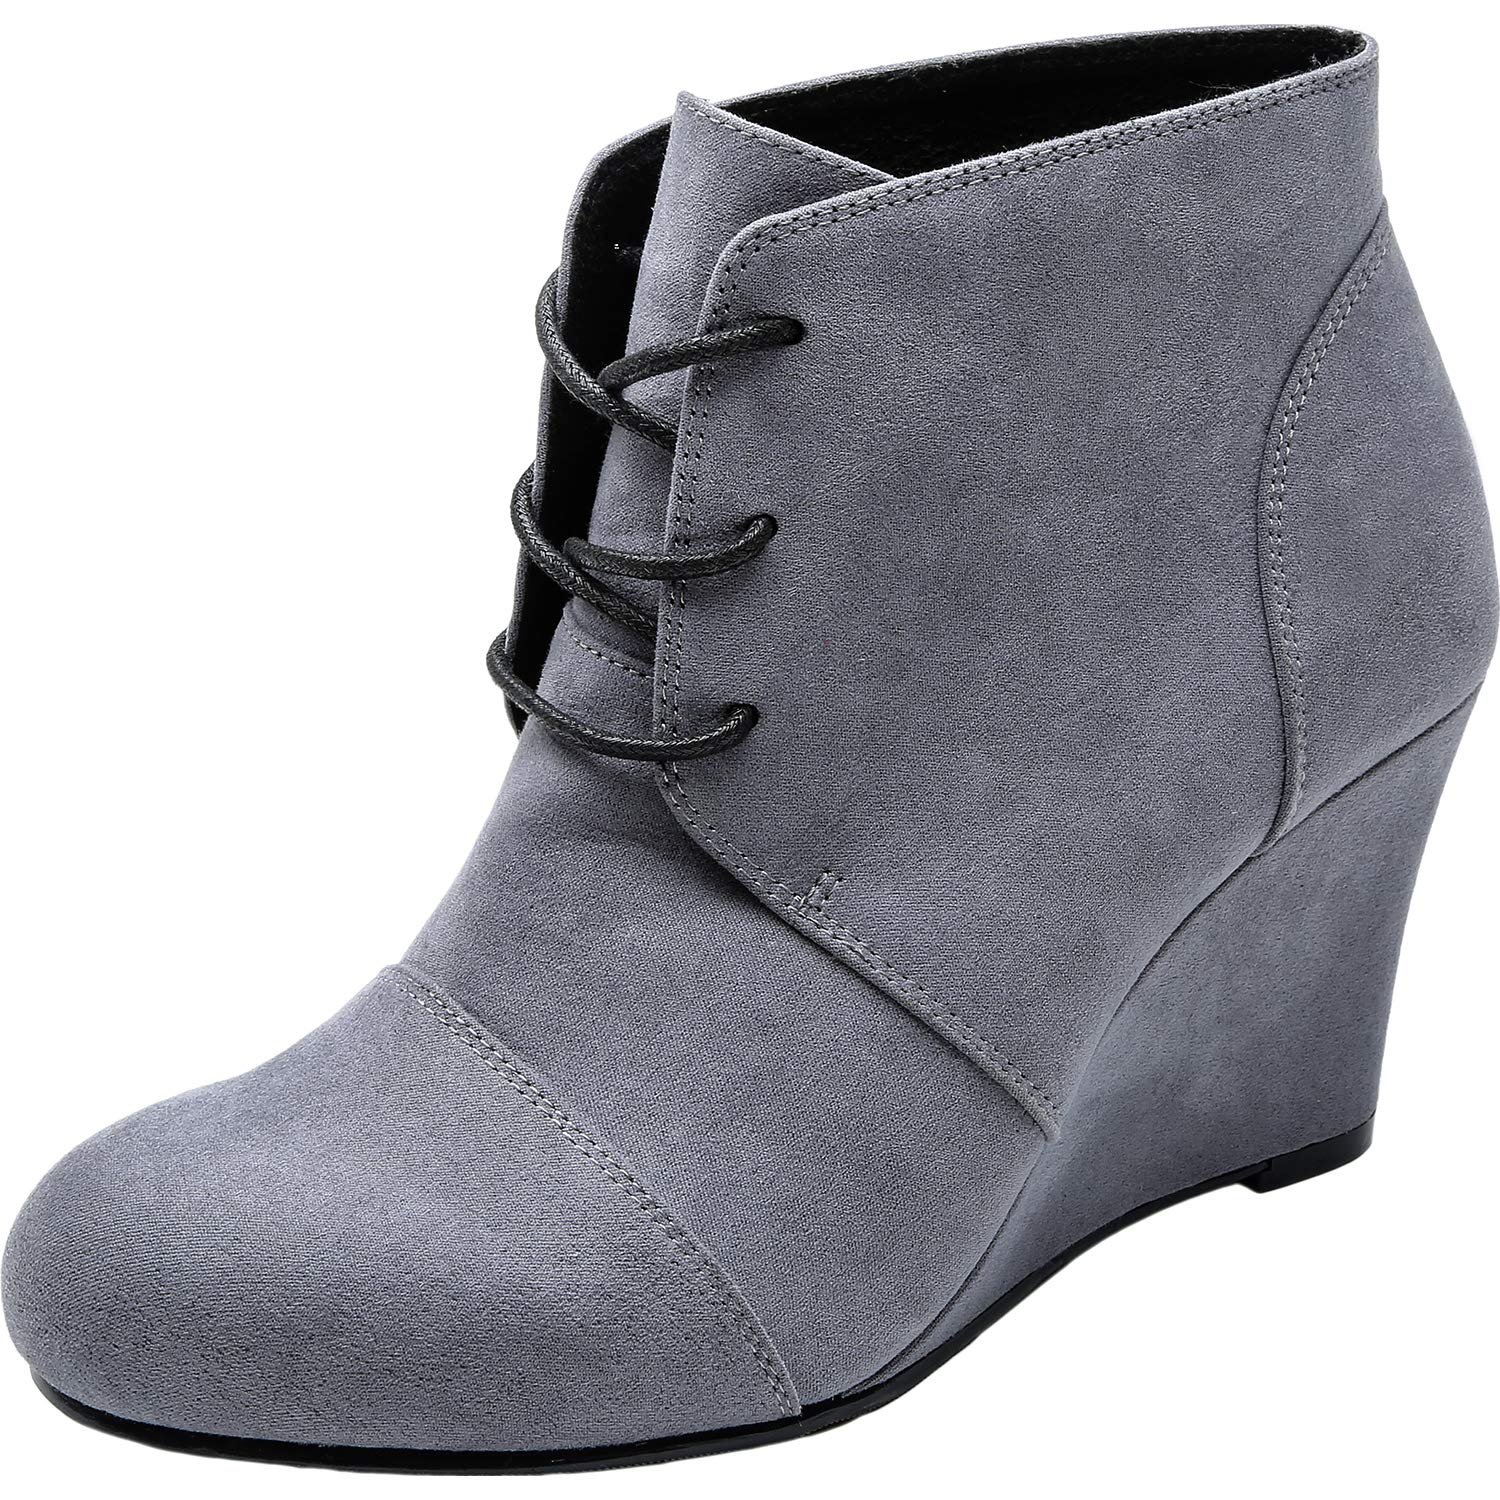 b0d8c1cf3b9e Amazon.com  Women s Wide Width Wedge Boots - Lace Up Low Heeled Ankle  Booties w Round Closed Toe Rubber Sole Memory Foam Insole.  Shoes